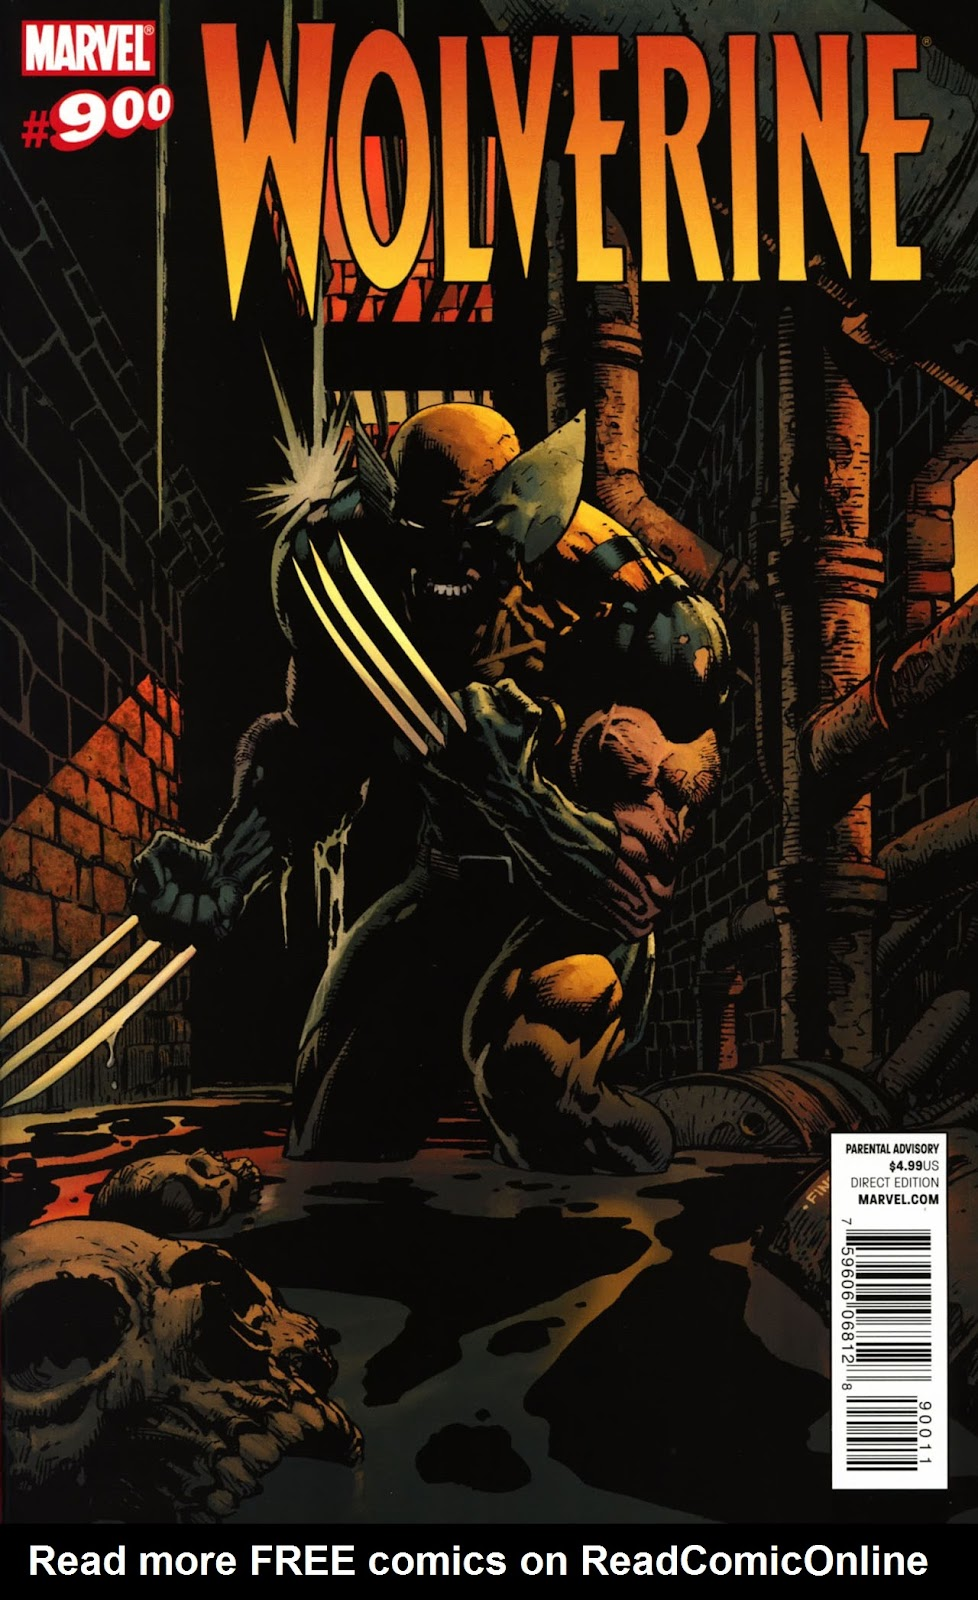 Read online Wolverine (2003) comic -  Issue #900 - 1